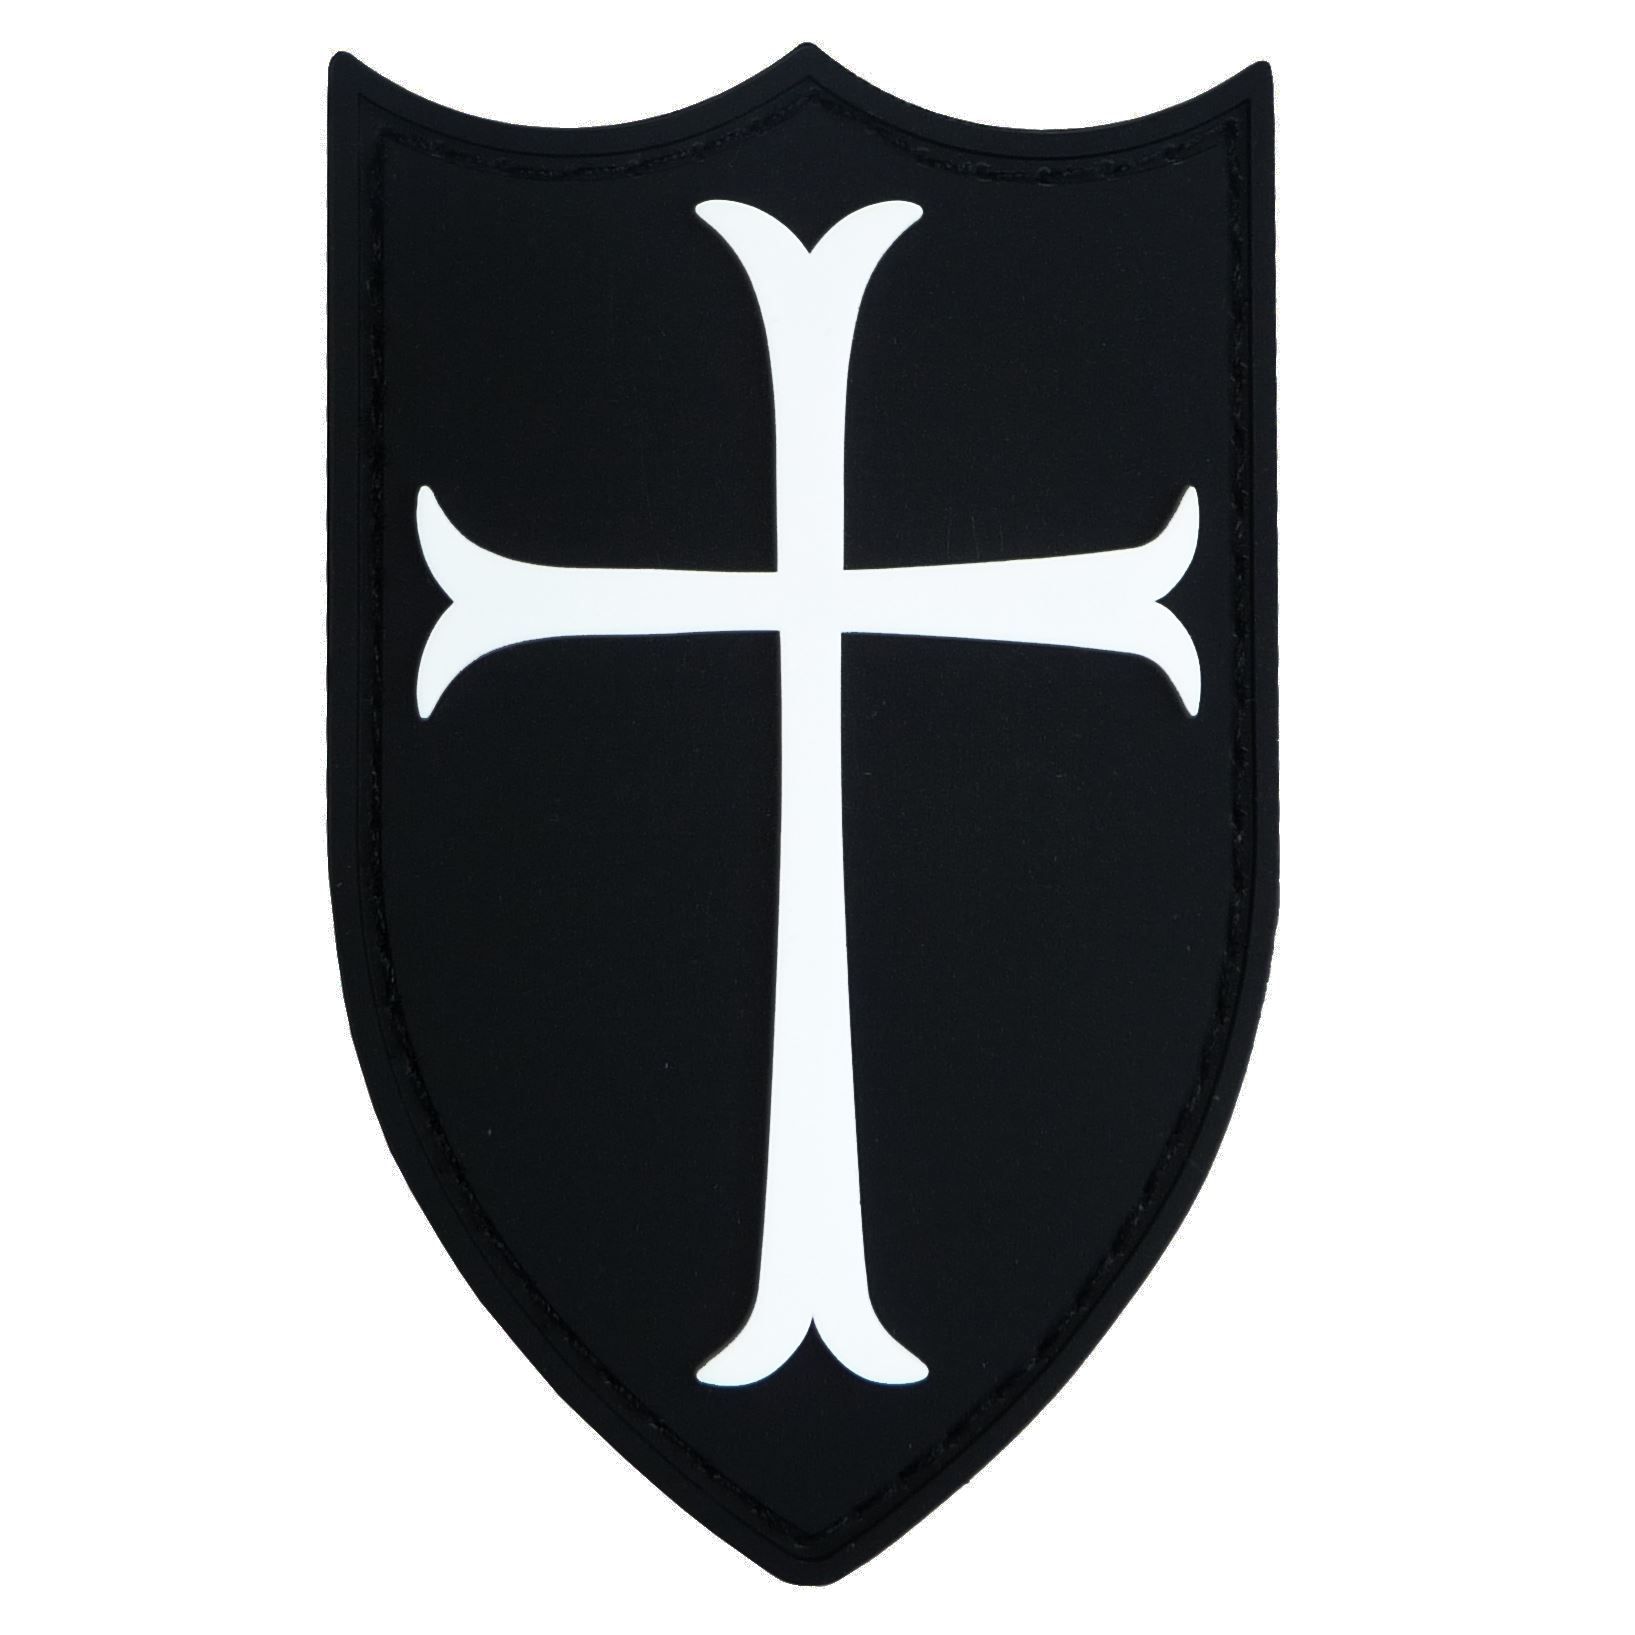 1635x1635 Airsoft Crusader Cross Shield Rubber 3d Navy Seals Patch Black